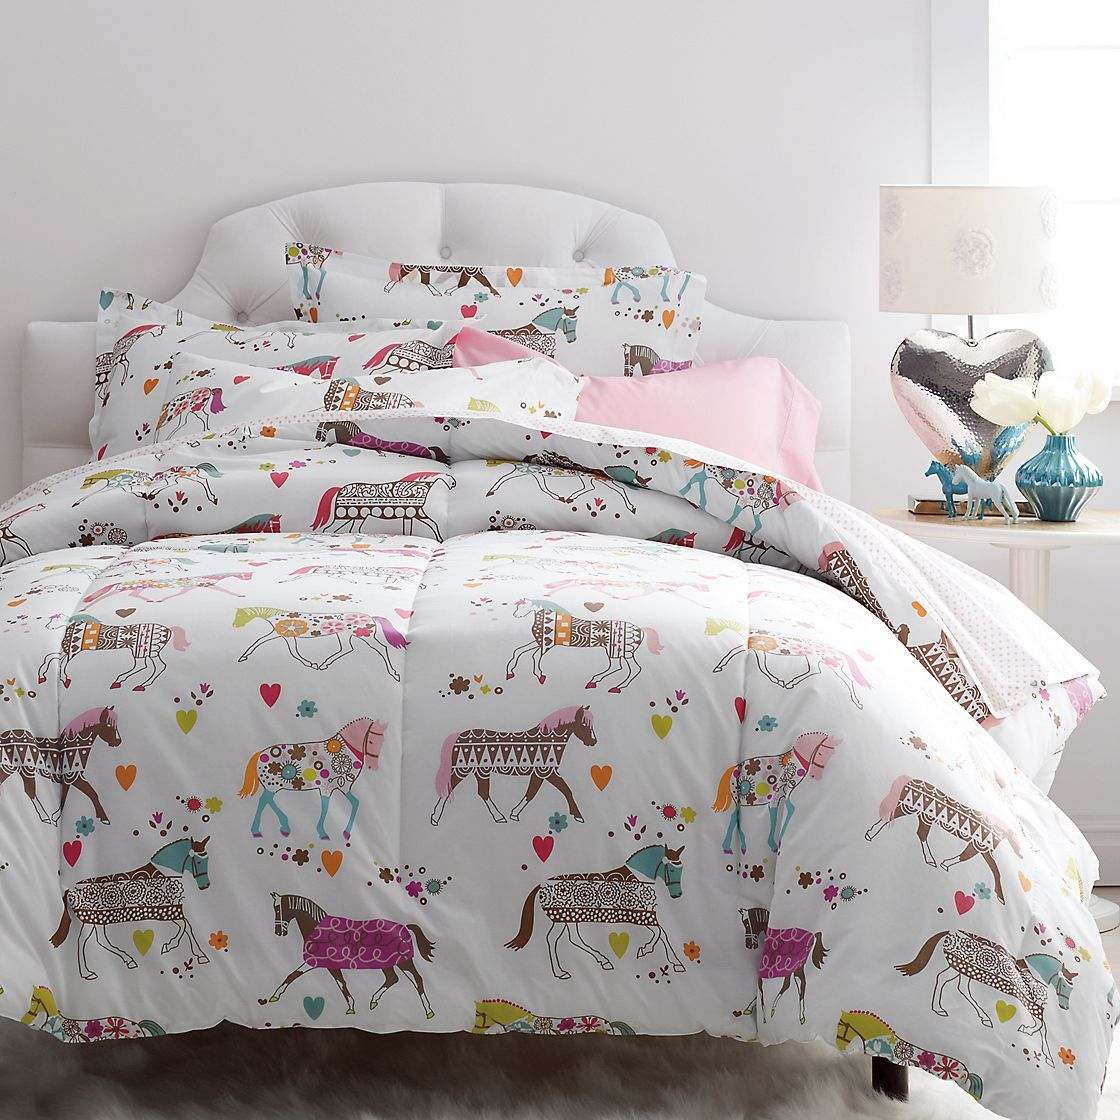 supercozy kids comforter designed with a colorful carousel of horses made from